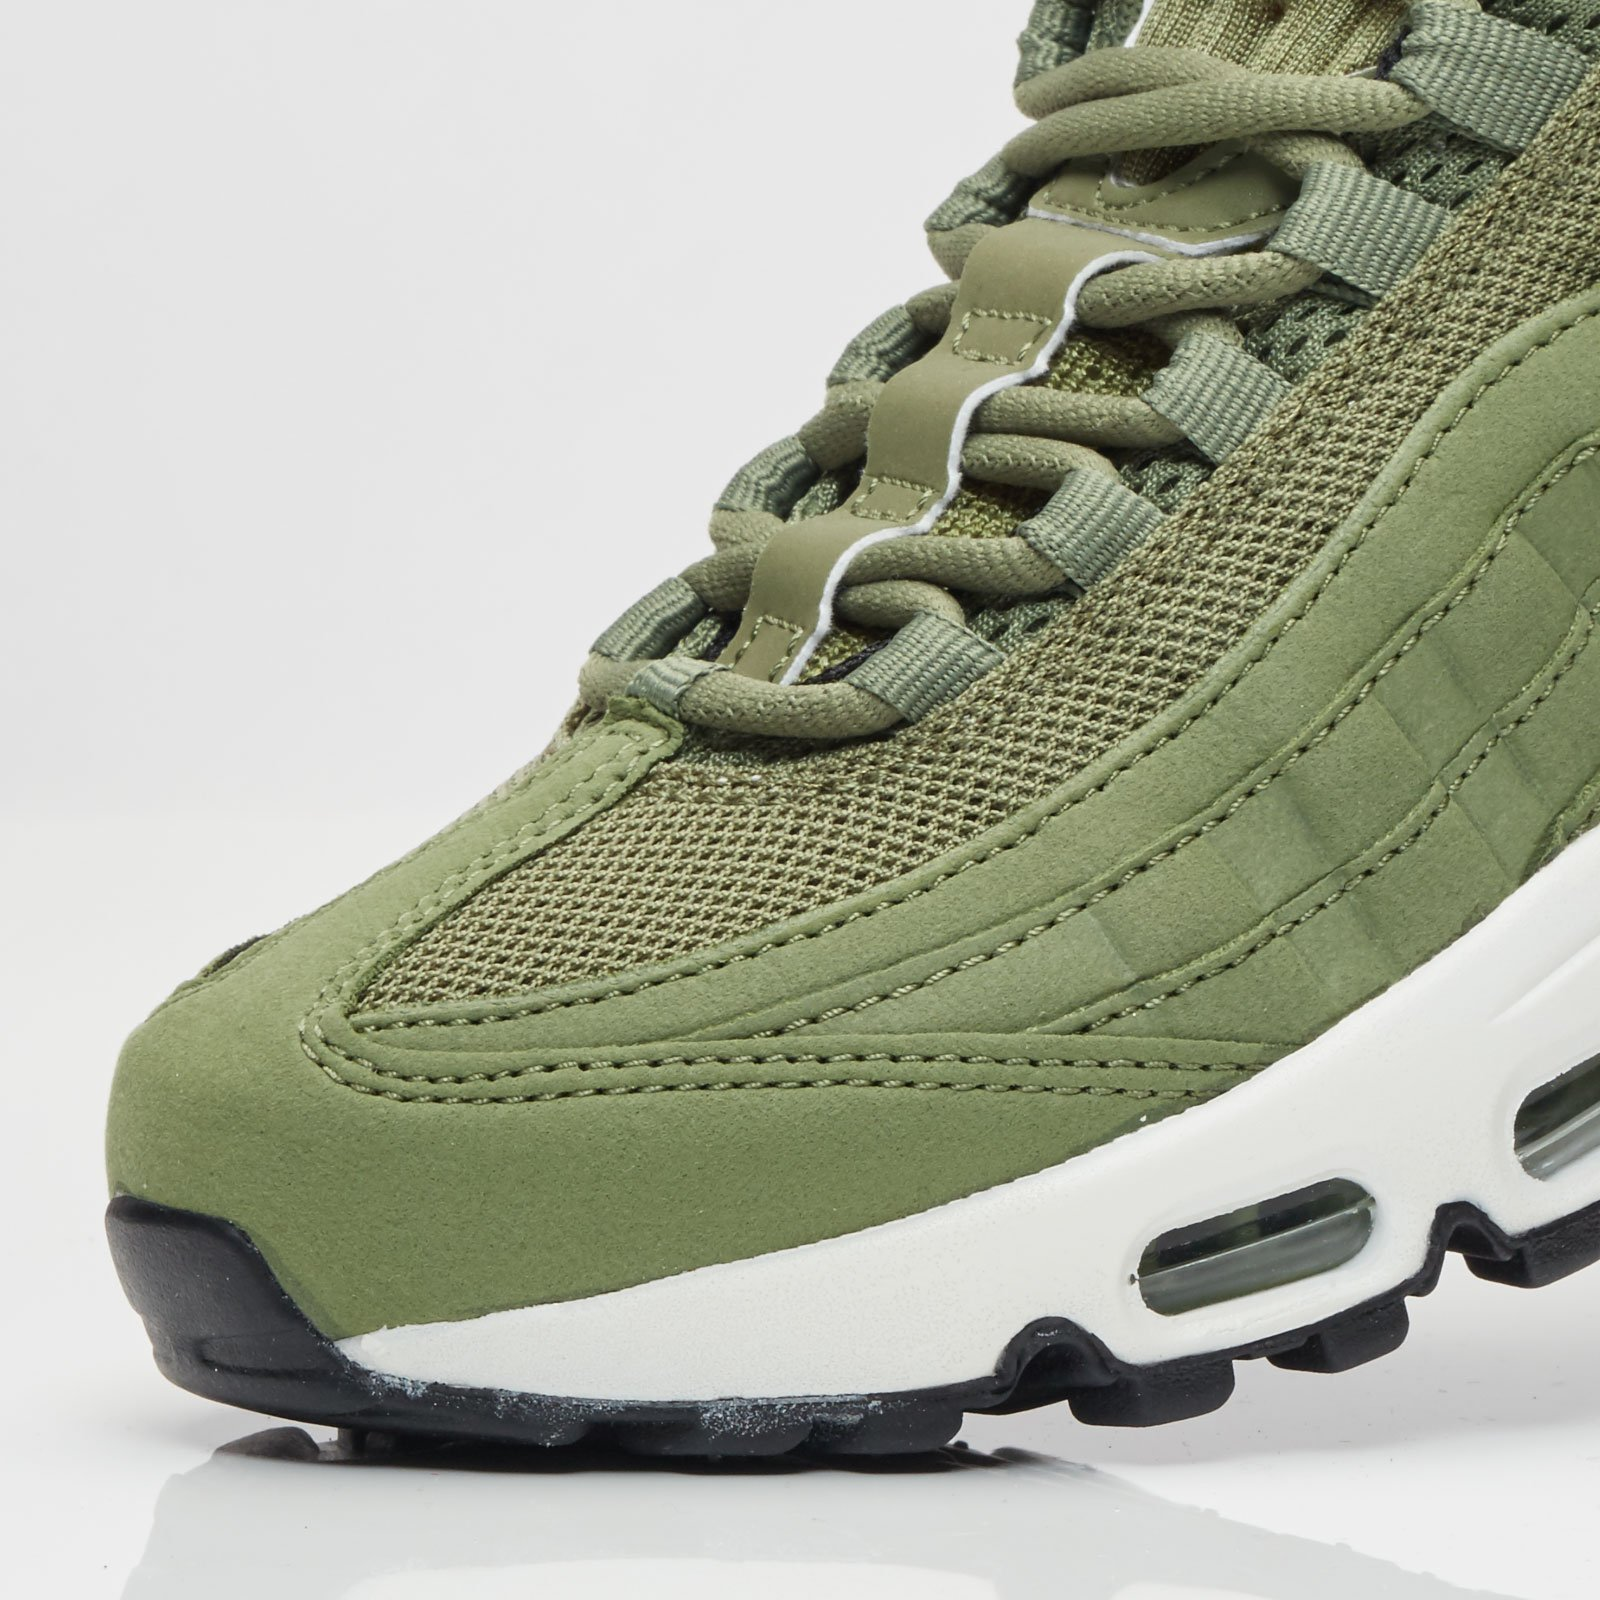 SneakersnstuffSneakers Max 95 307960 Nike Air 300 Wmns fgY6yb7